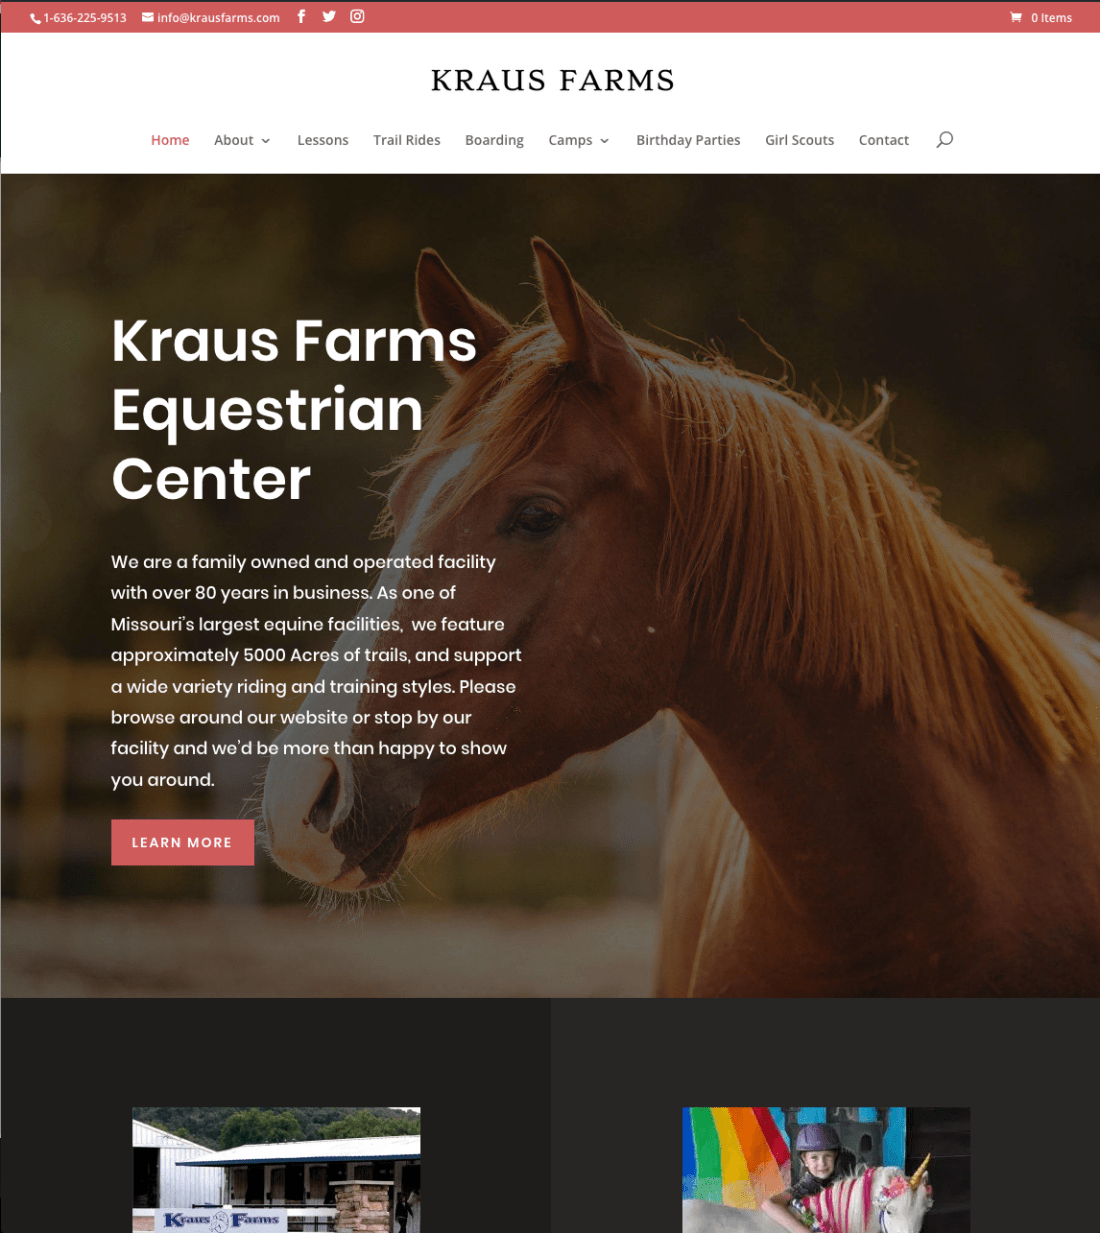 Kraus Farms Equestrian Center Website